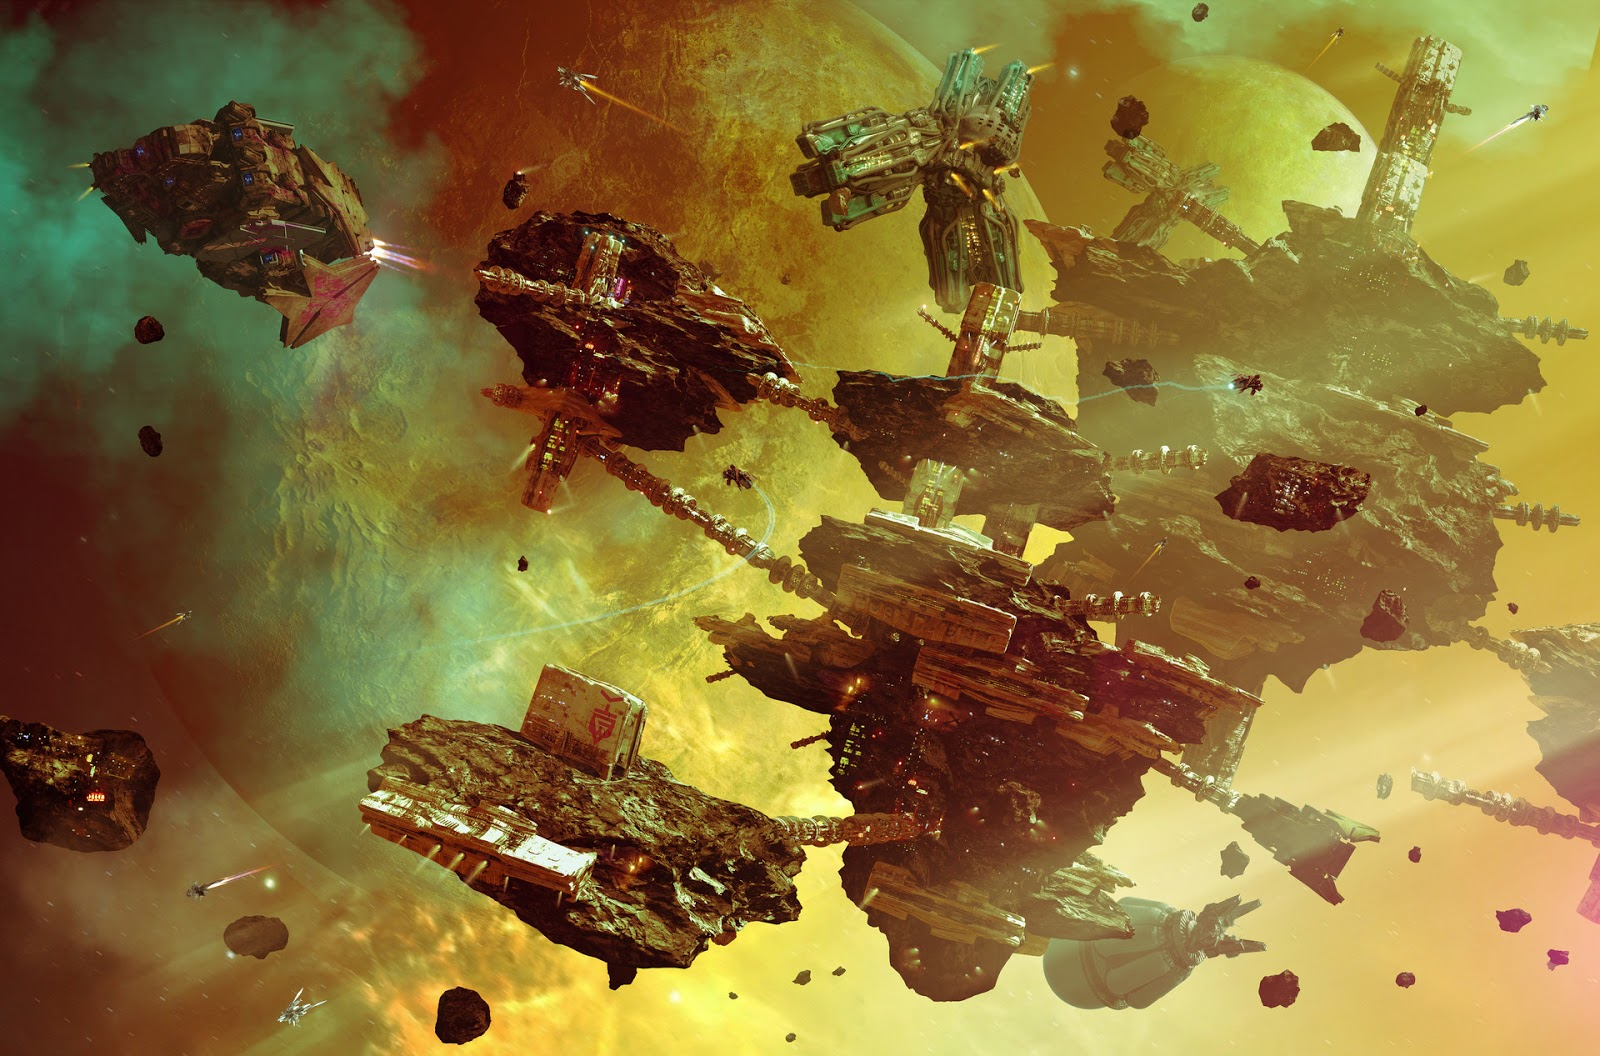 Images: A Collection Of Sci-Fi Concept Art From Col Price